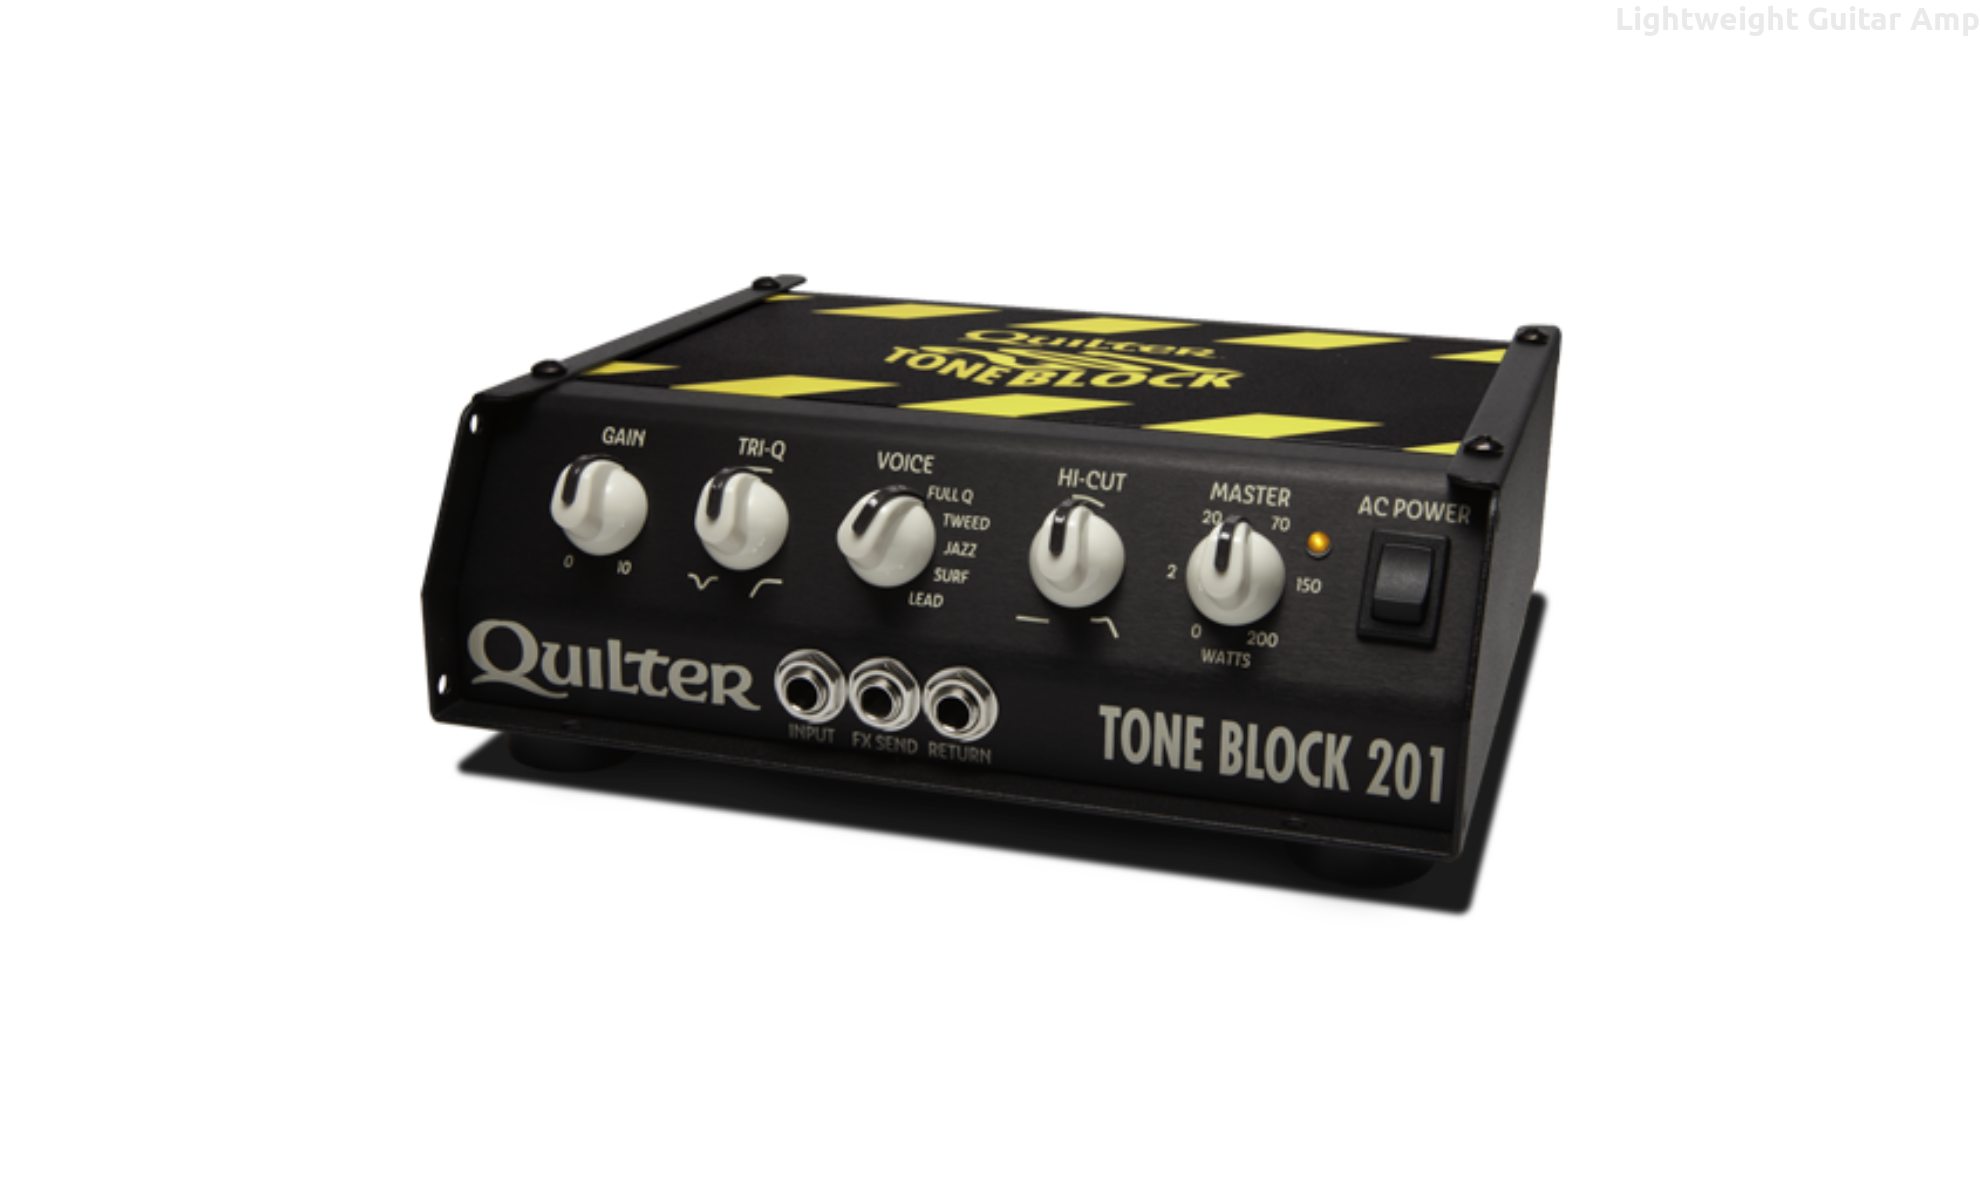 2ae70def46 Quilter Tone Block 201 with Deluxe Carry Case - Lightweight Guitar amp